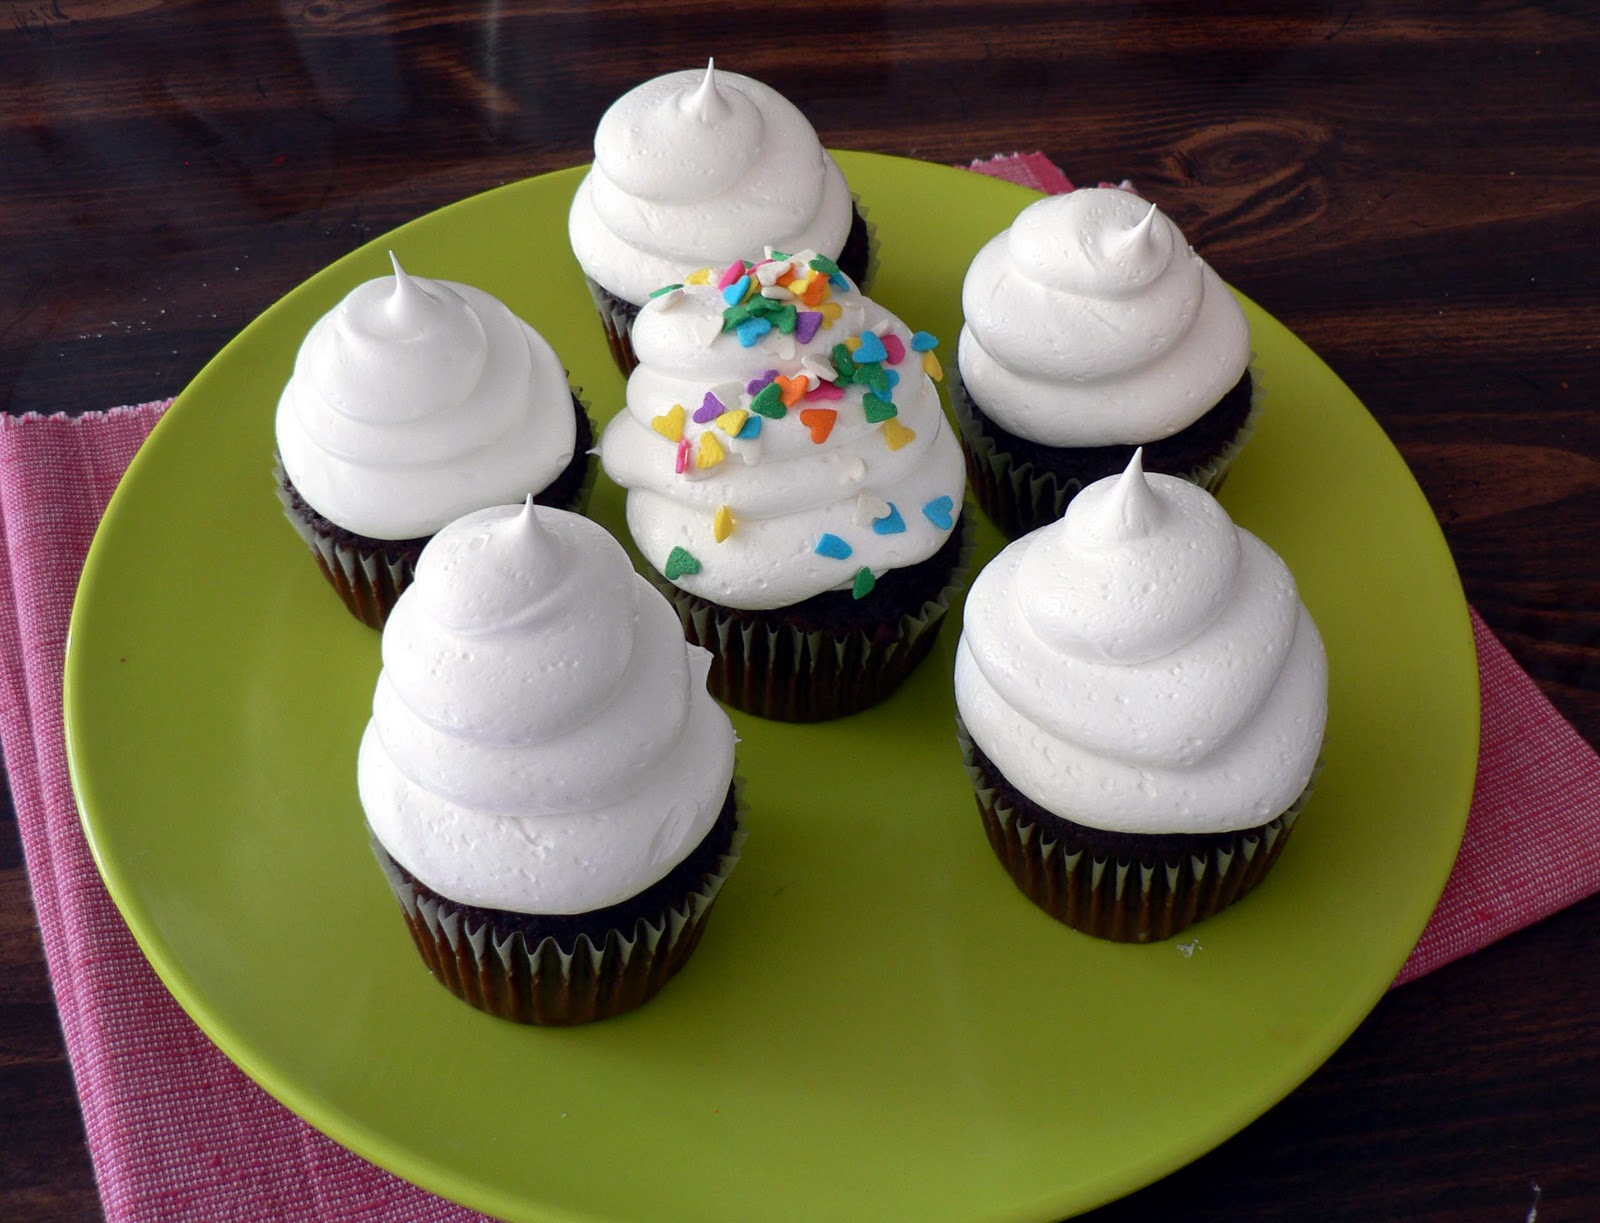 Dairy Free Cake Decorating Icing : White Cloud Icing - Bless This Mess